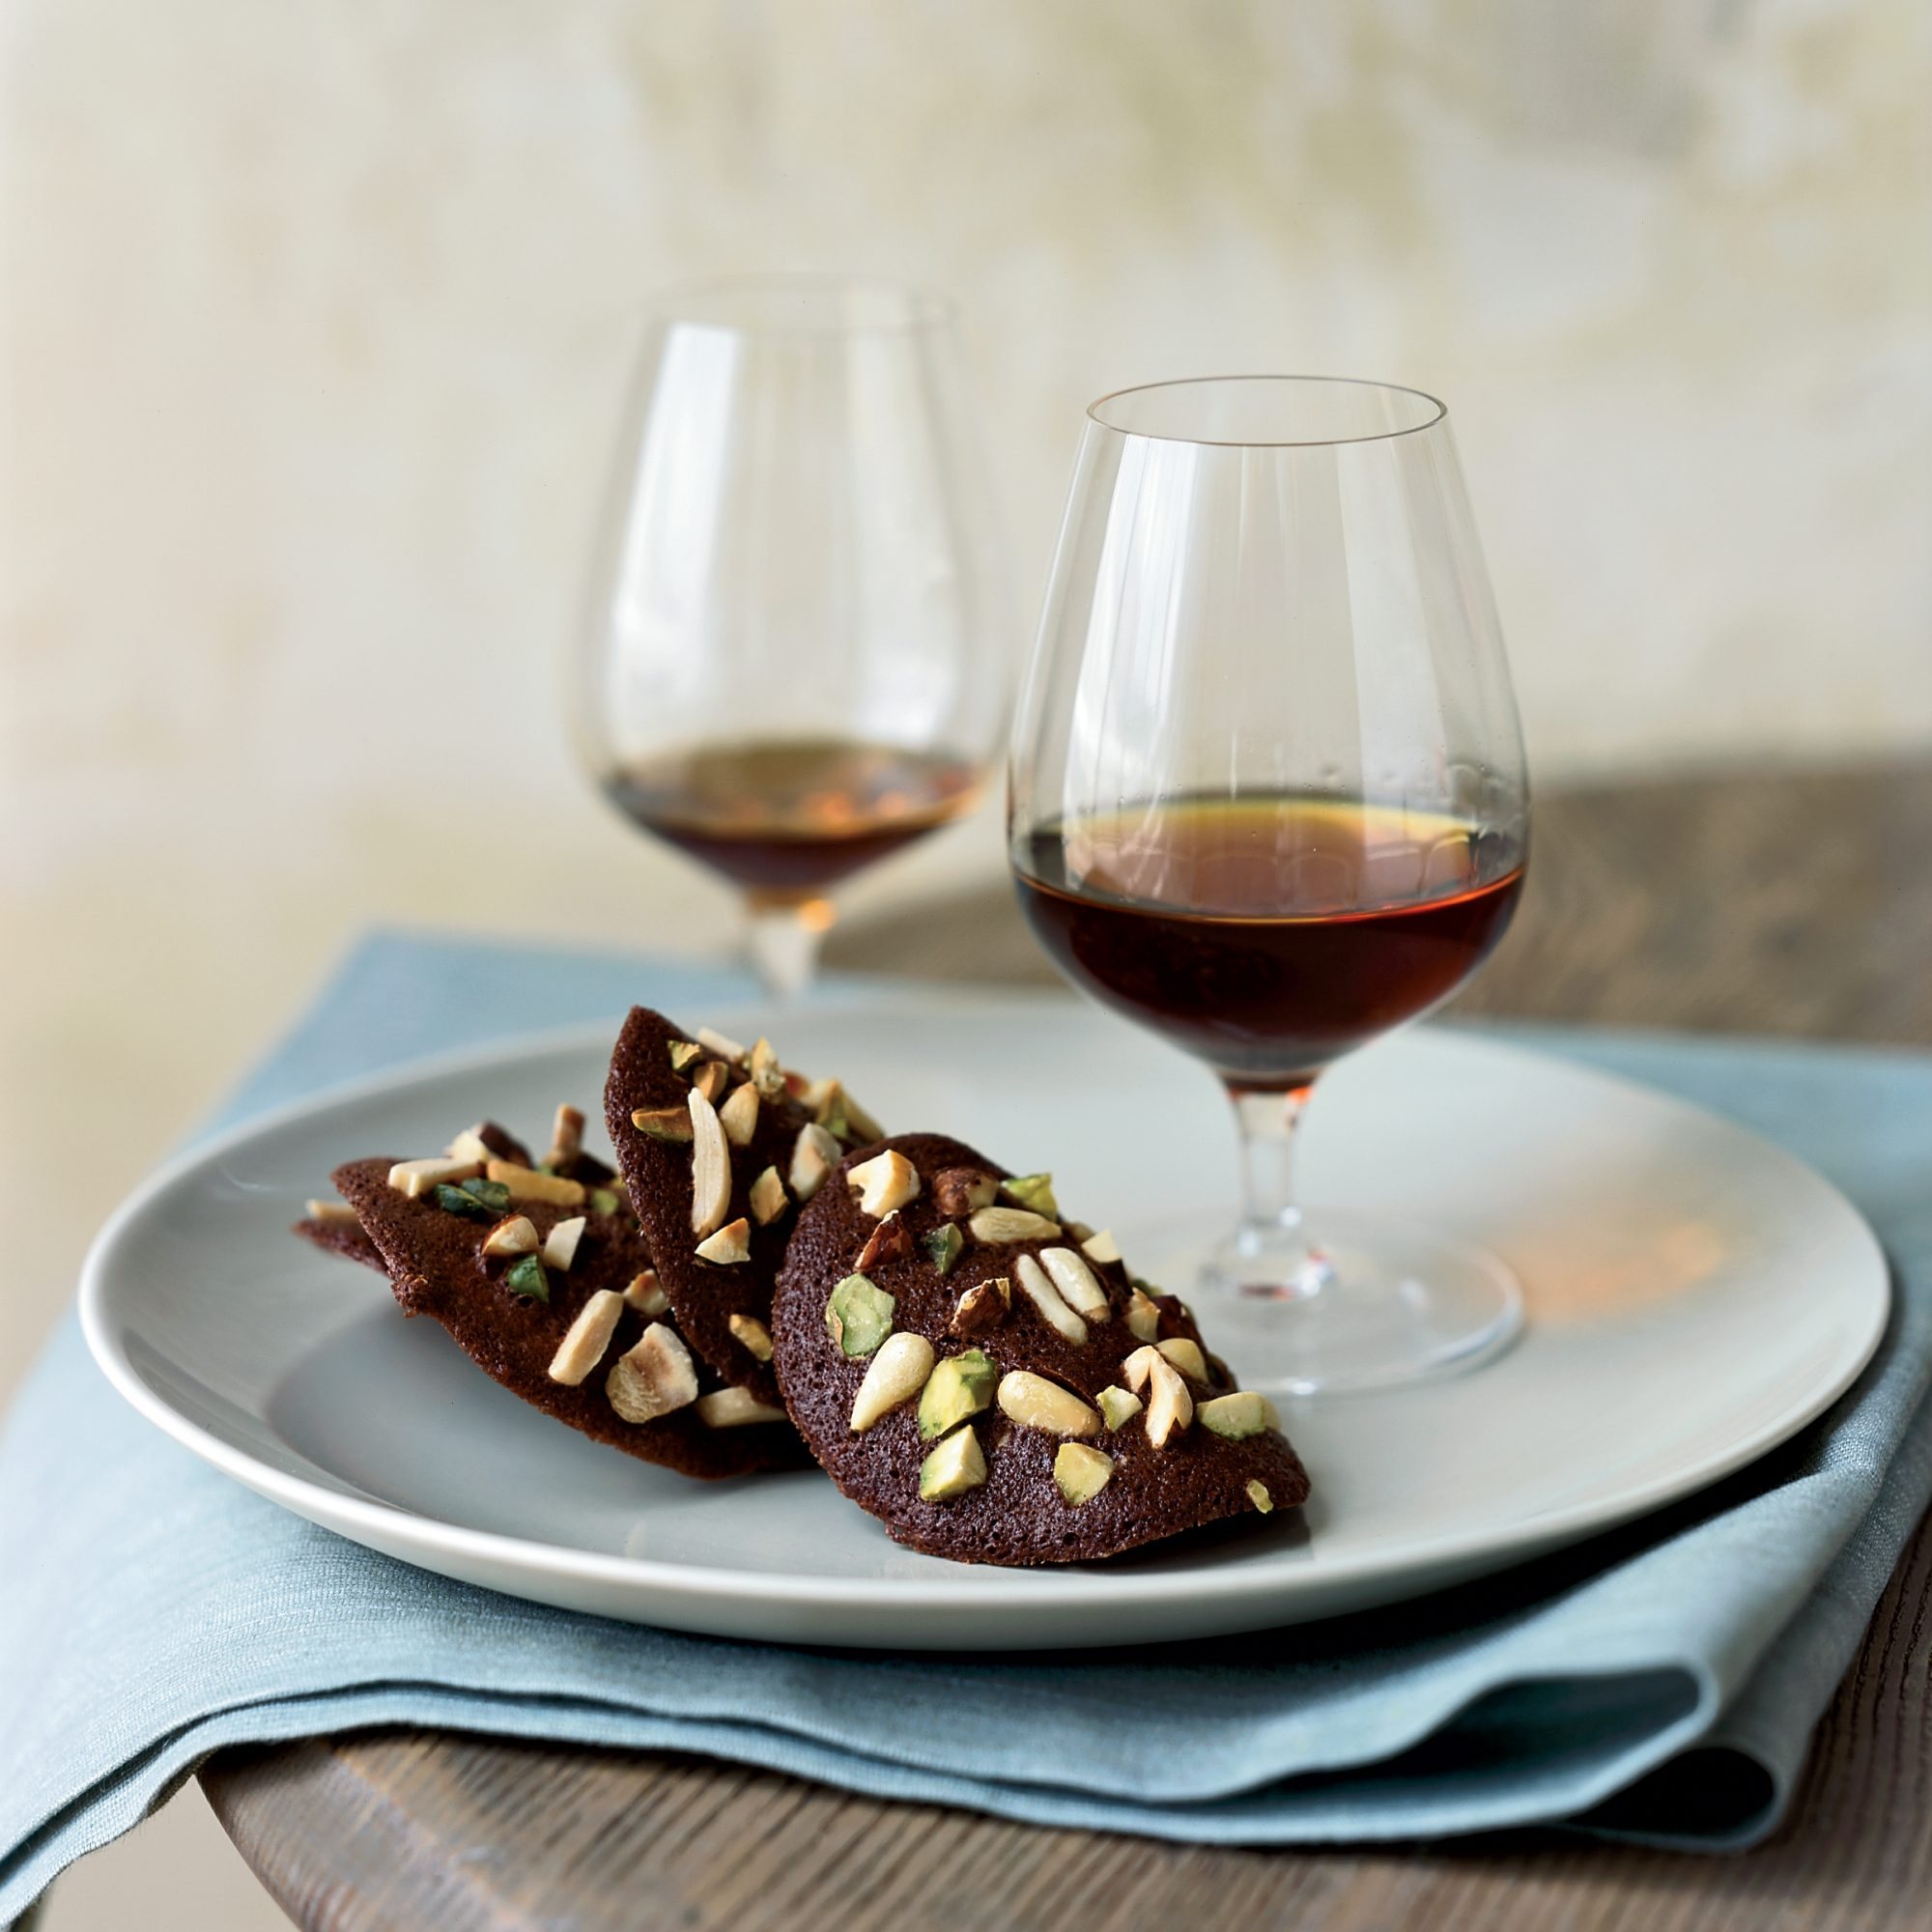 Cocoa Tuiles with Nuts